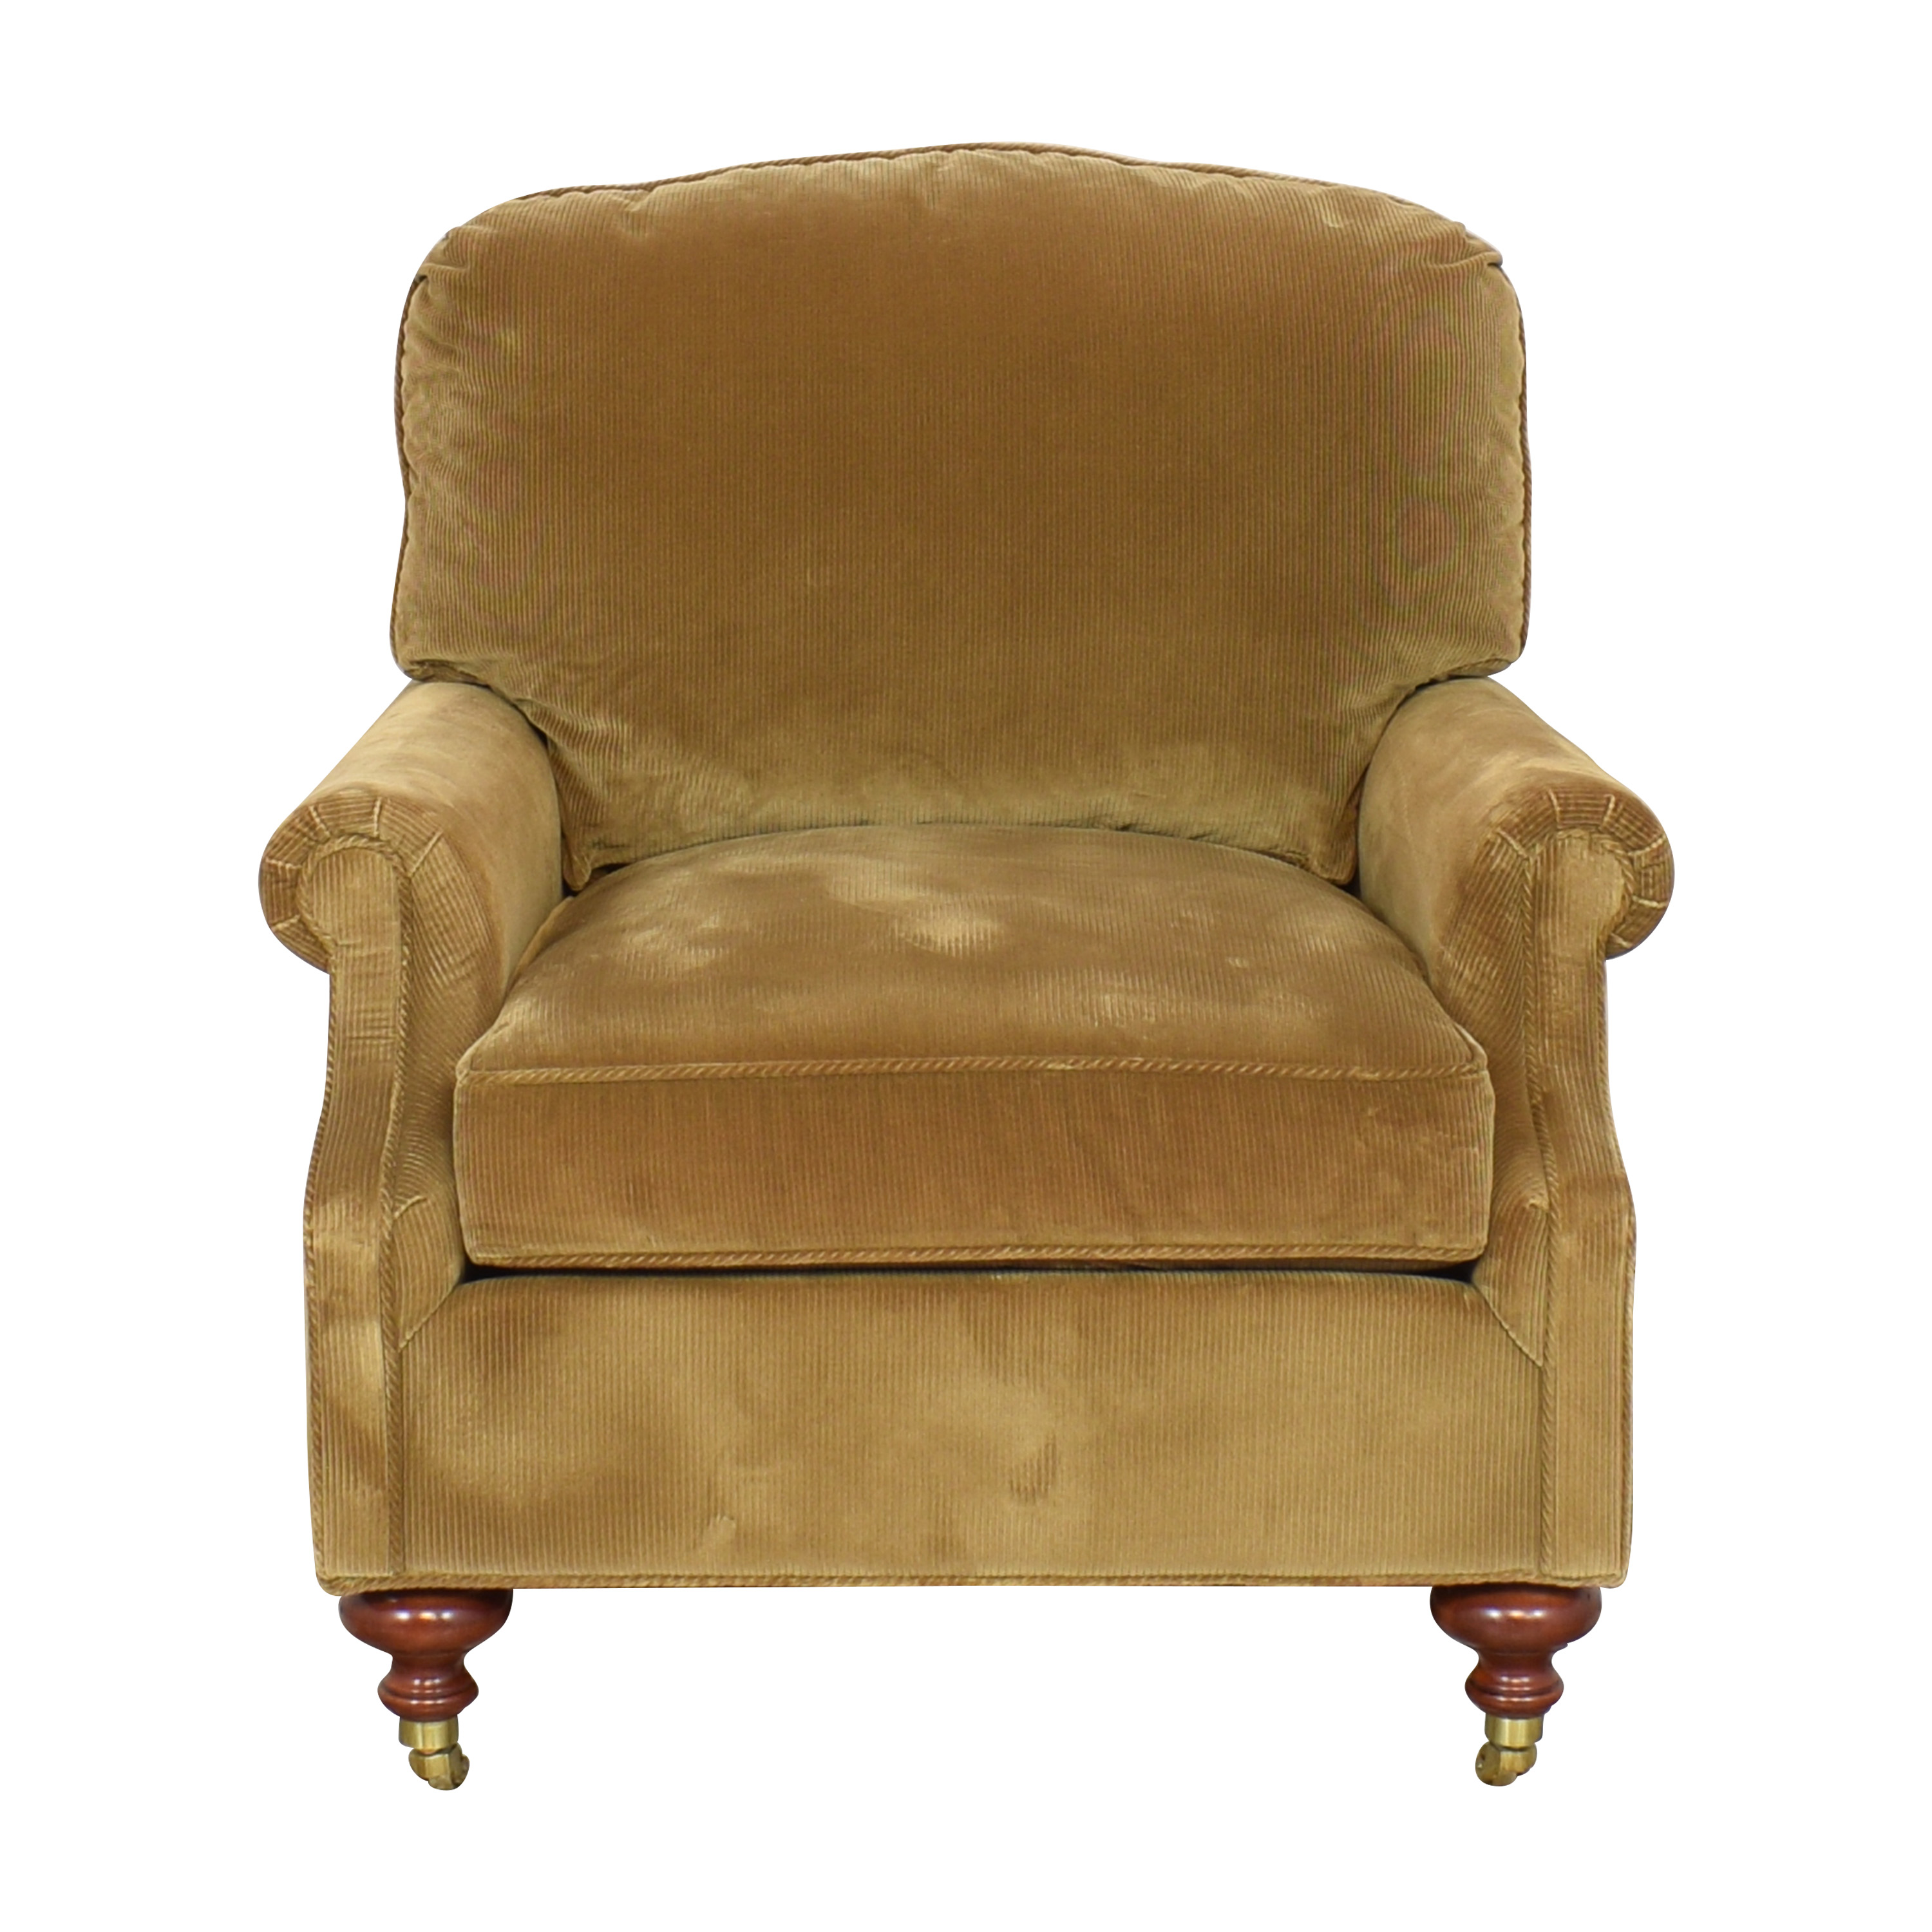 Charles Stewart Company Accent Chair sale